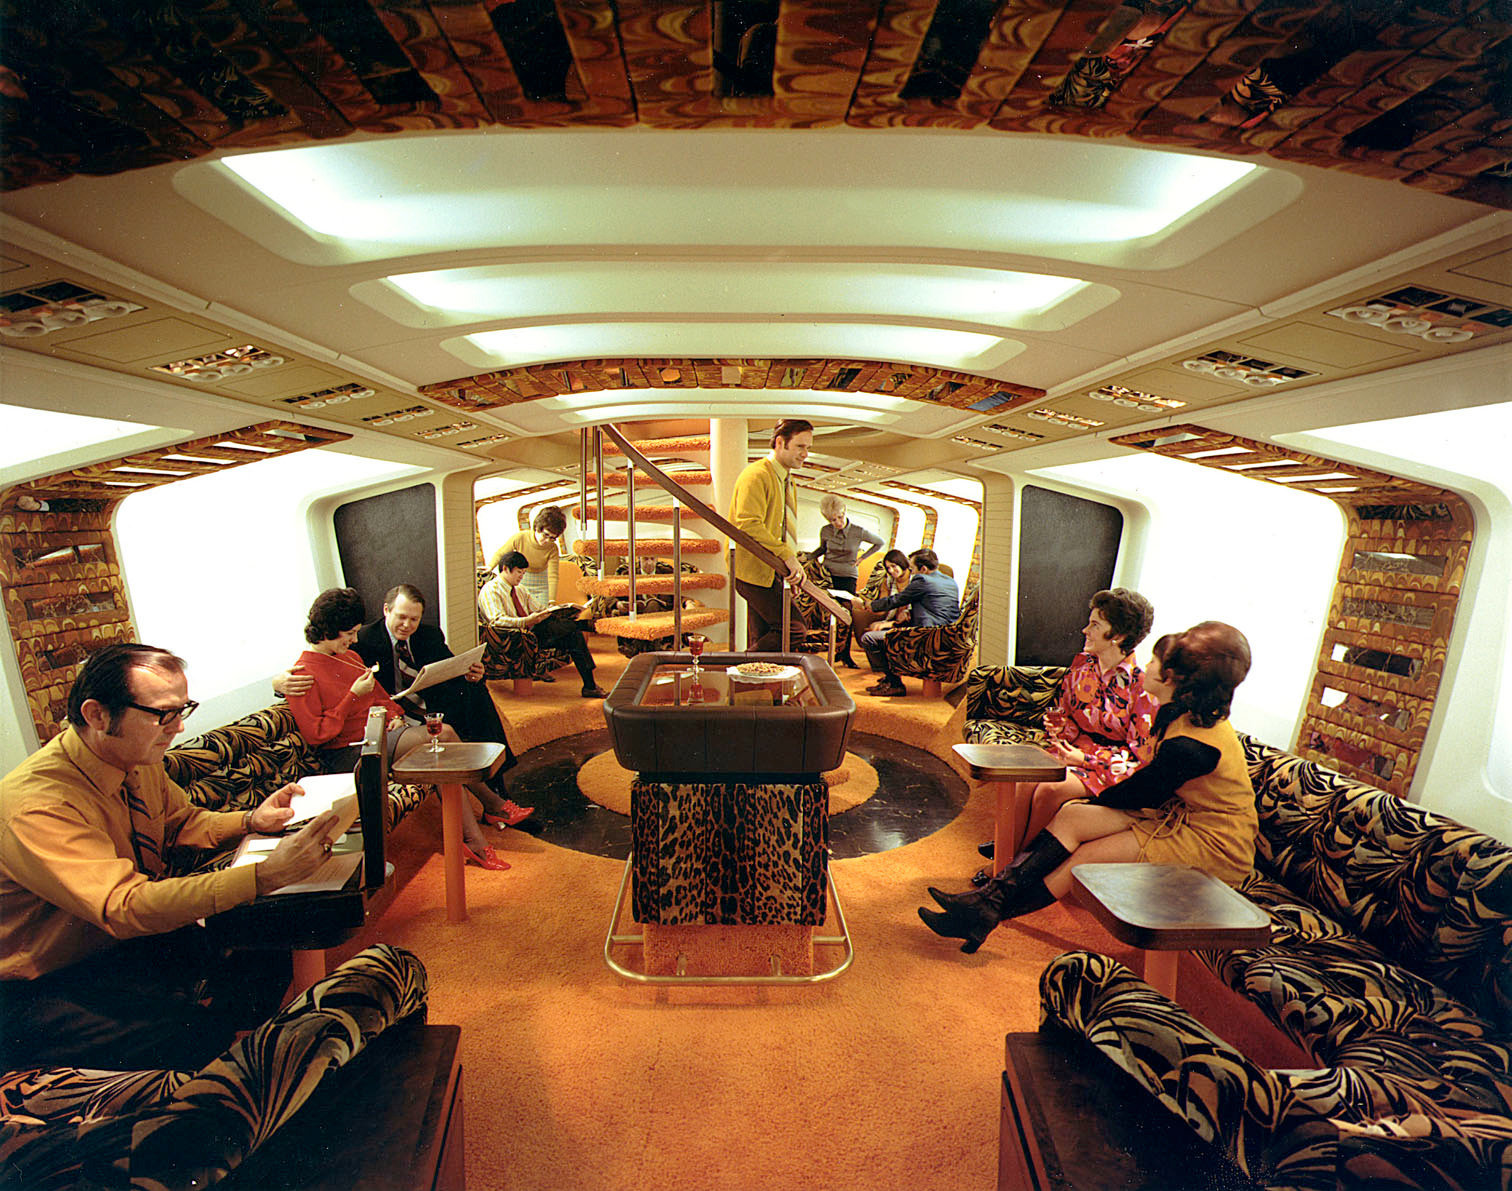 At the Tiger Lounge of an American Airlines Boeing 747. 1970's